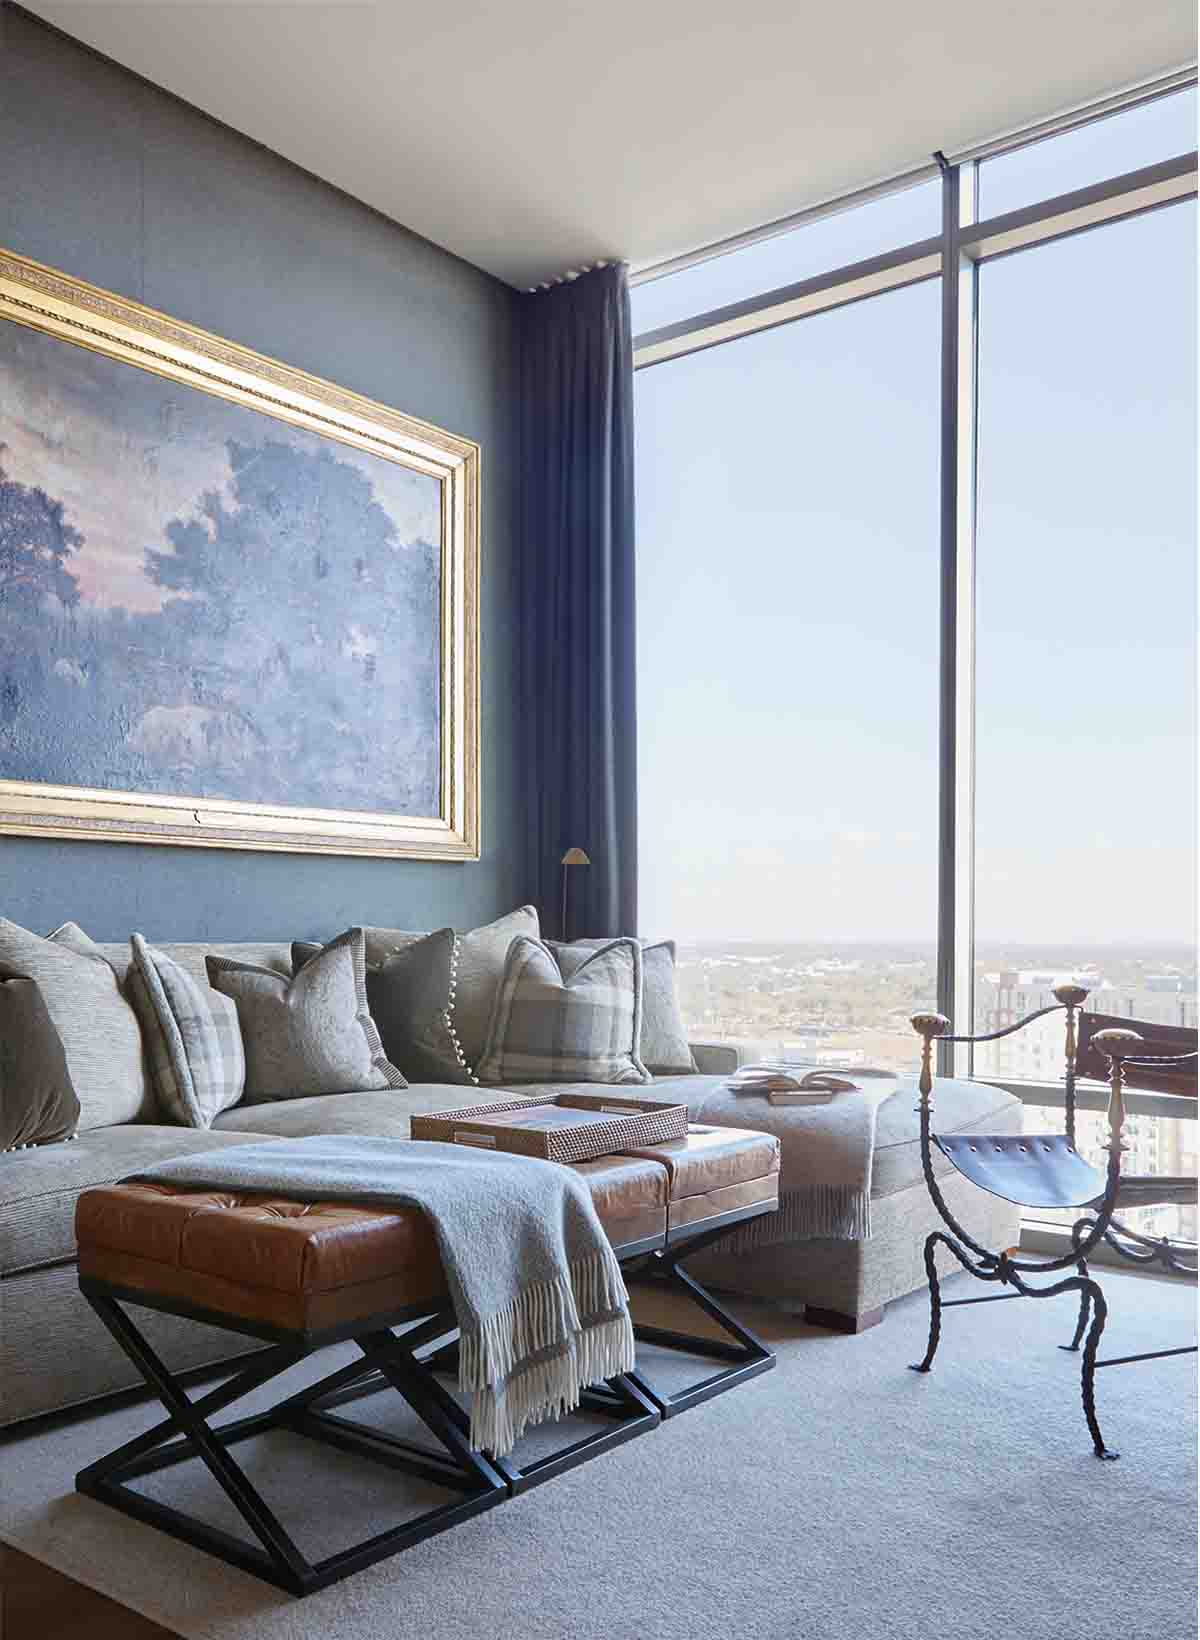 Room with a View - Nashville Penthouse - R.Higgins Interiors